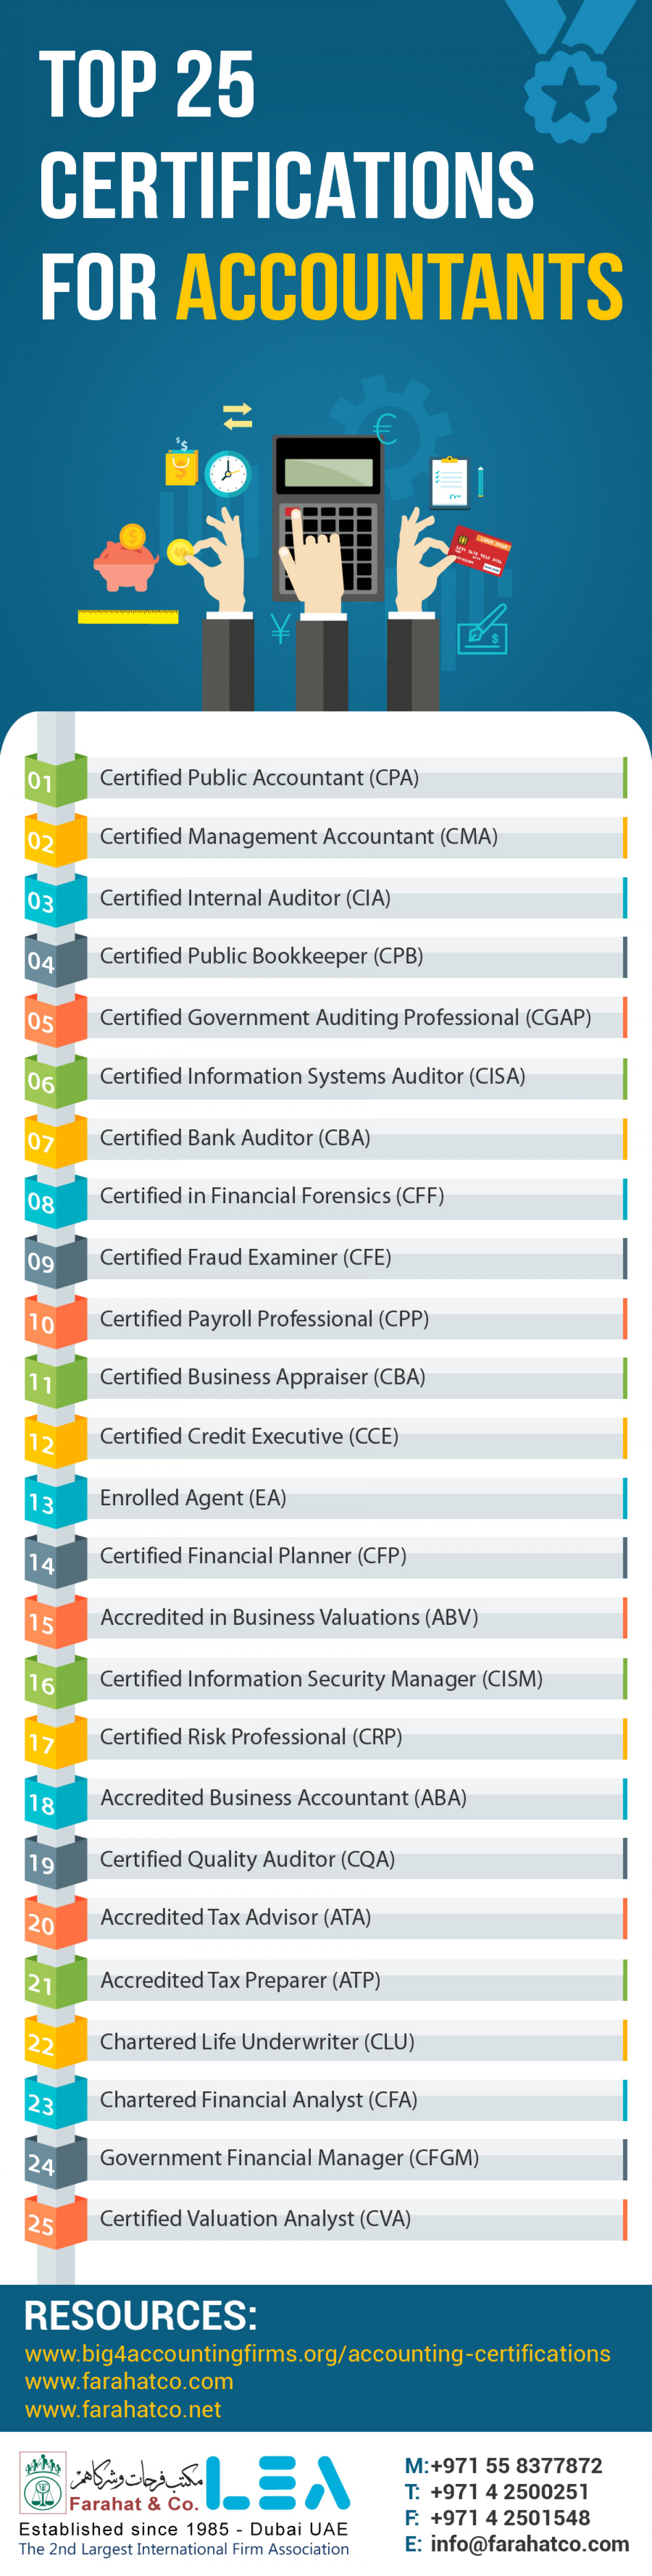 Top 25 Certifications For Accountants Visual